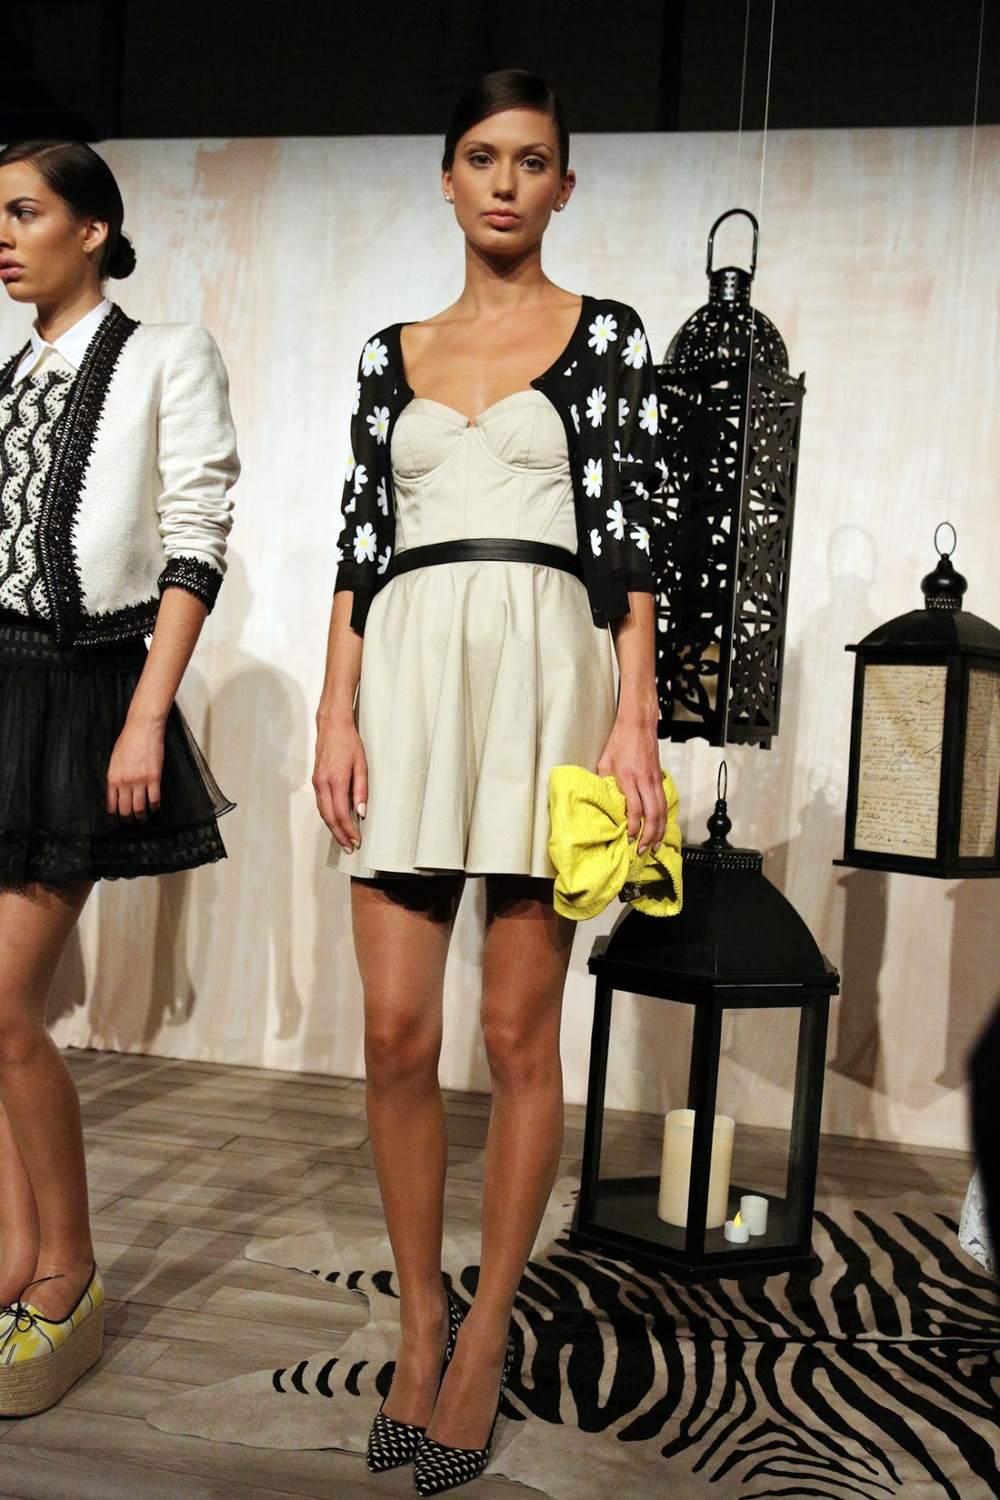 Alice+++Olivia+SS+2014+Collection+-+NYFW+-+Photo+by+Whitney+S.+Williams+-+alaLadywolf+(1).jpg